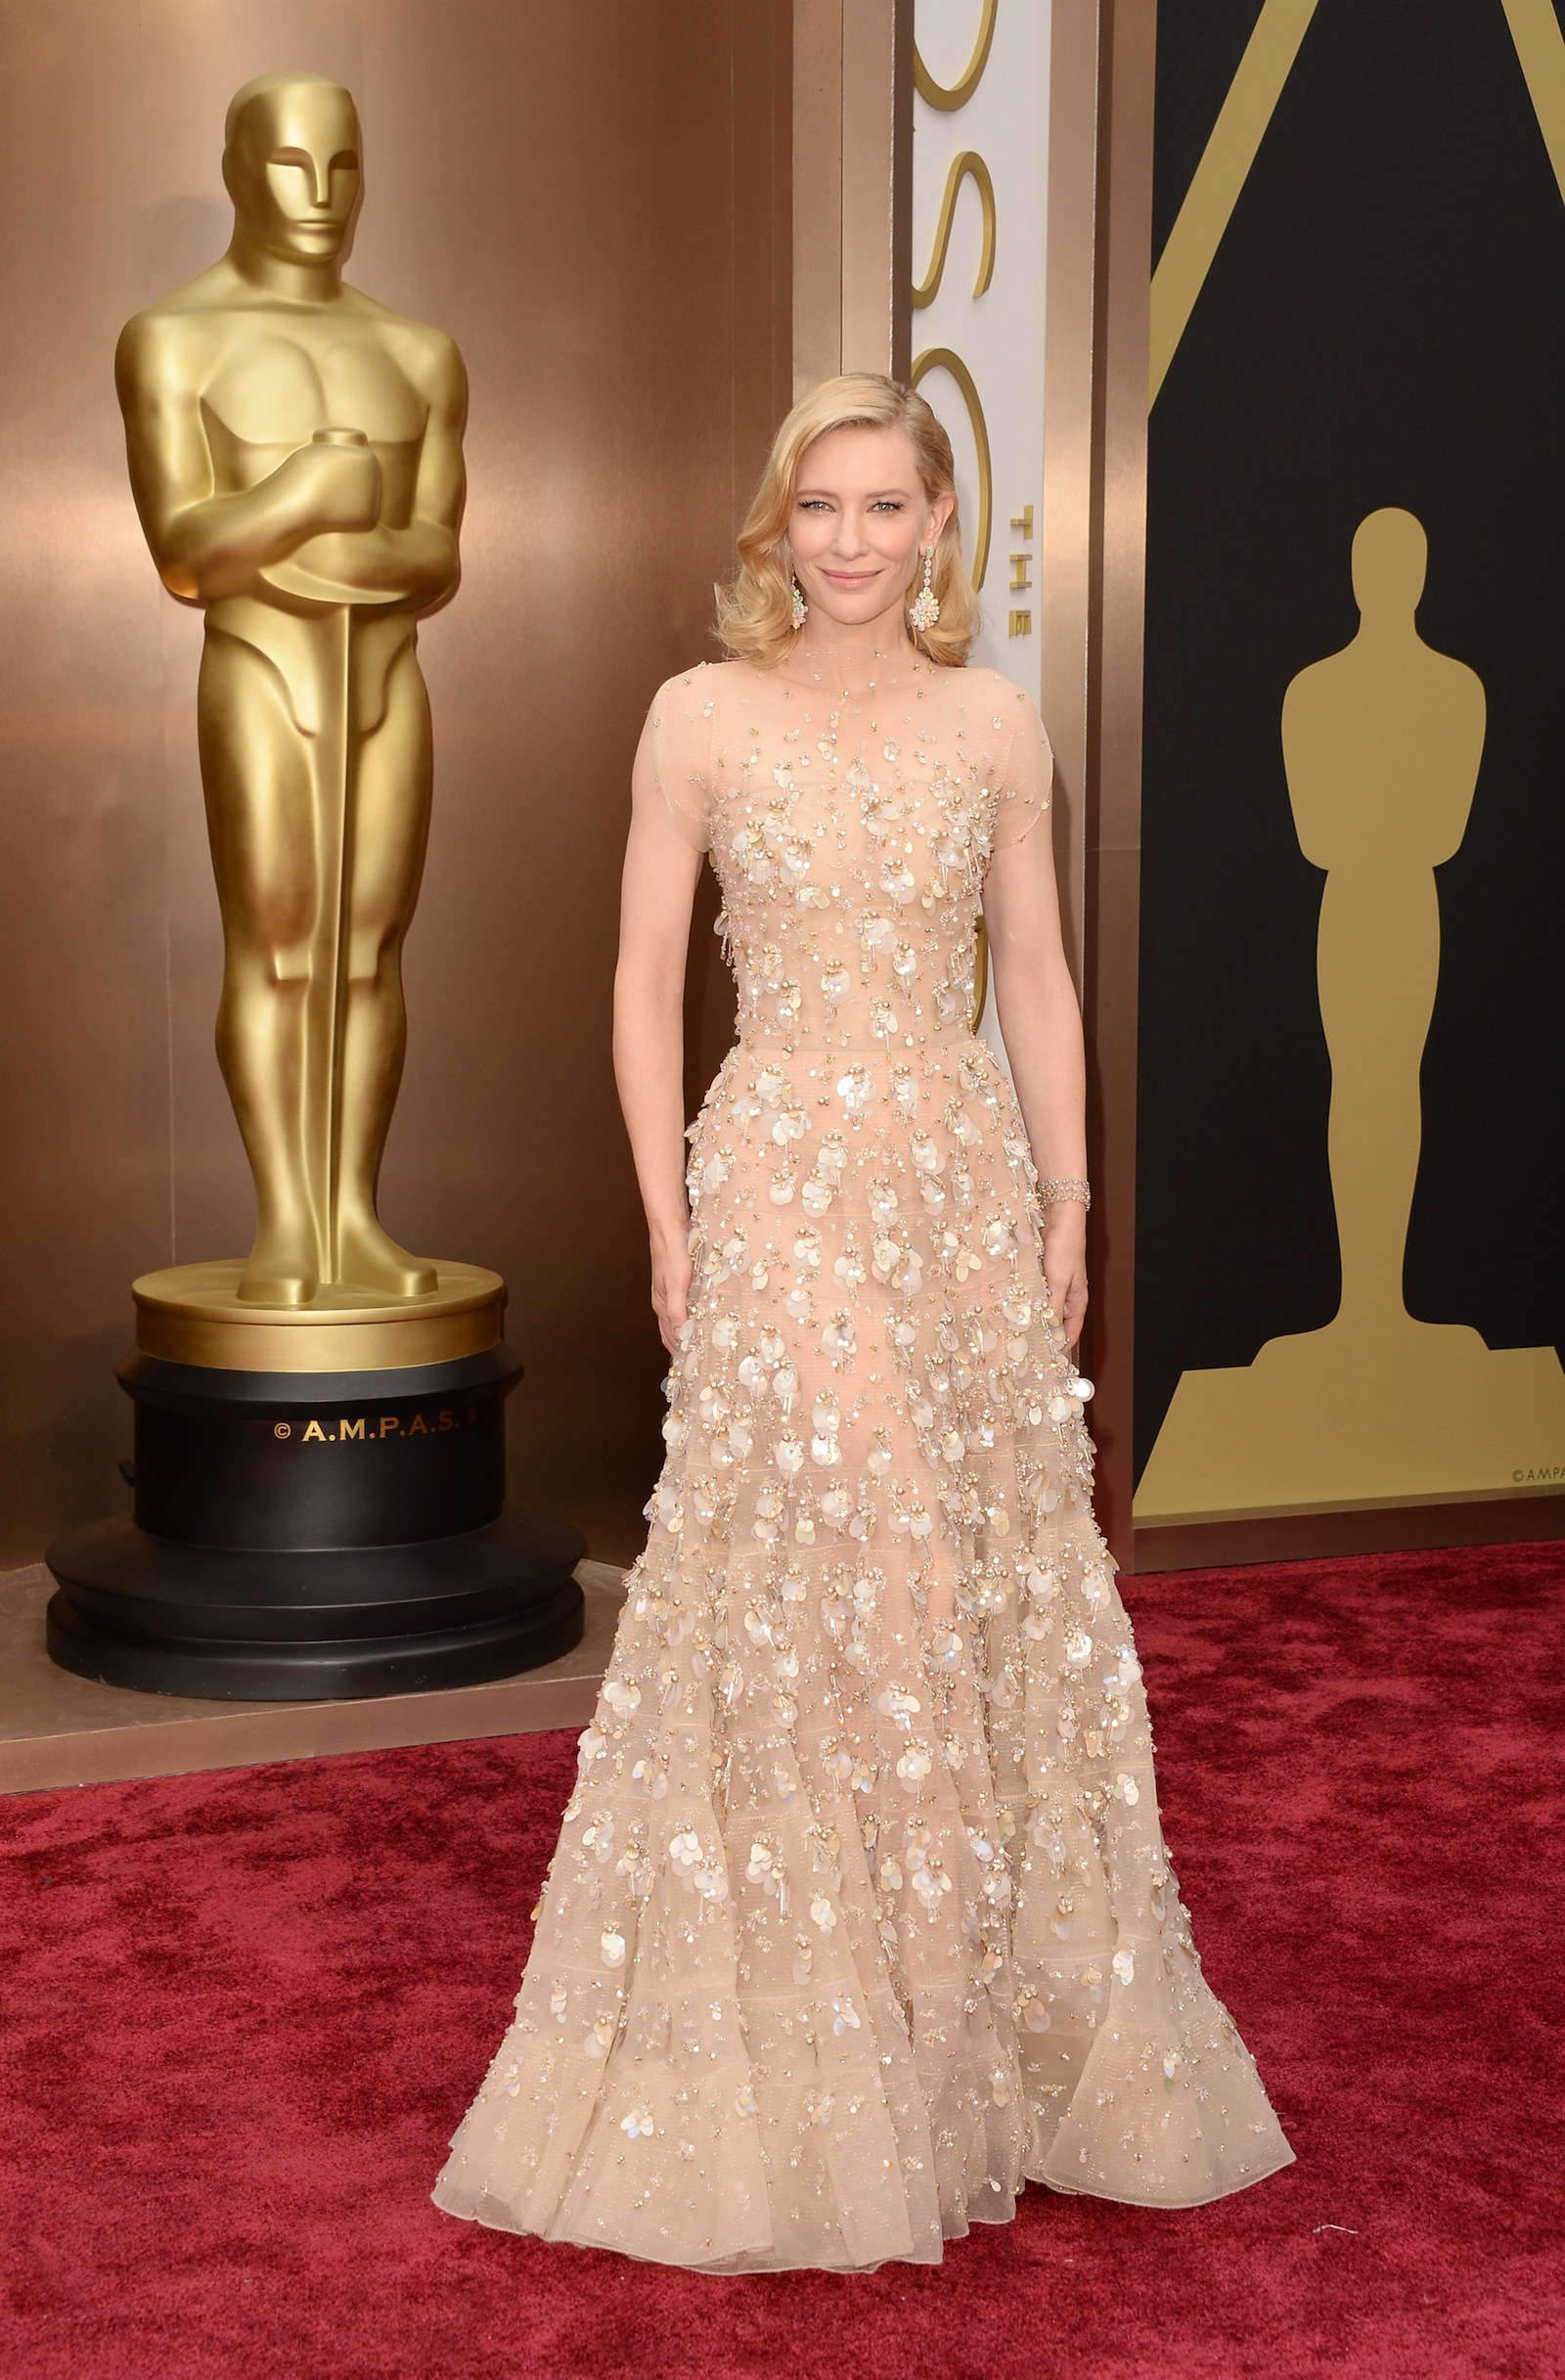 Best Actress Oscar winner Cate Blanchett is statuesque in a soft gold sequined Armani Prive glowing with gold Swarovski crystals.